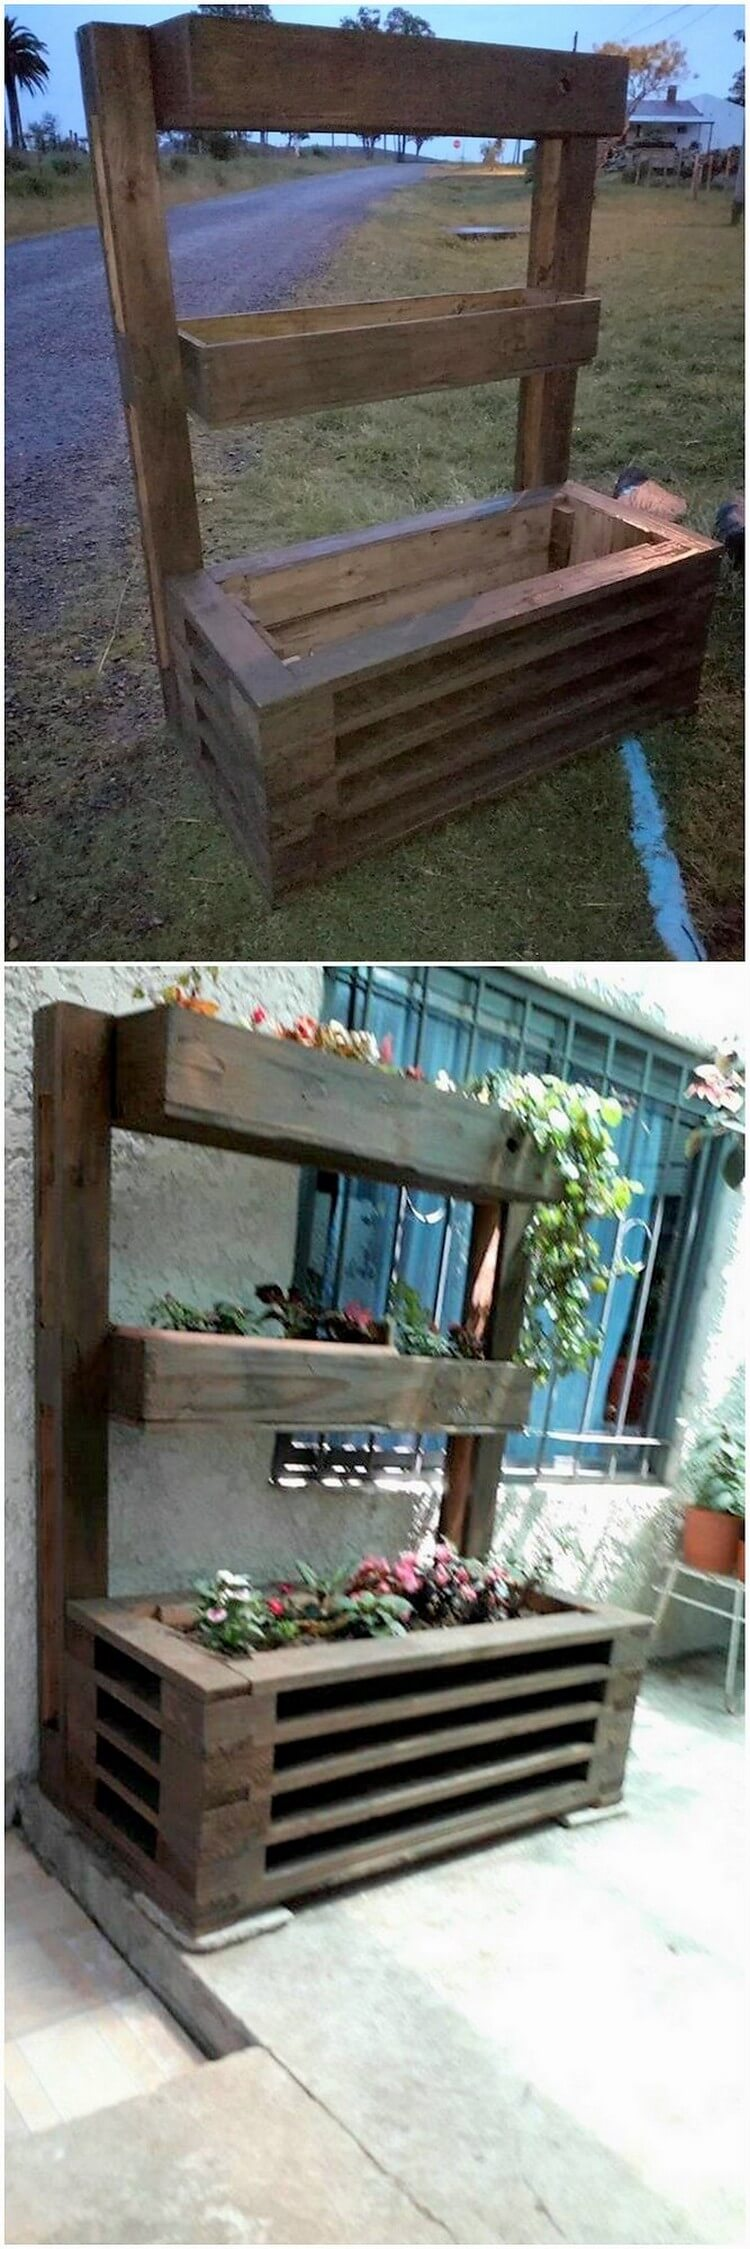 Creative and Cool Ideas Out of Recycled Wood Pallets ...